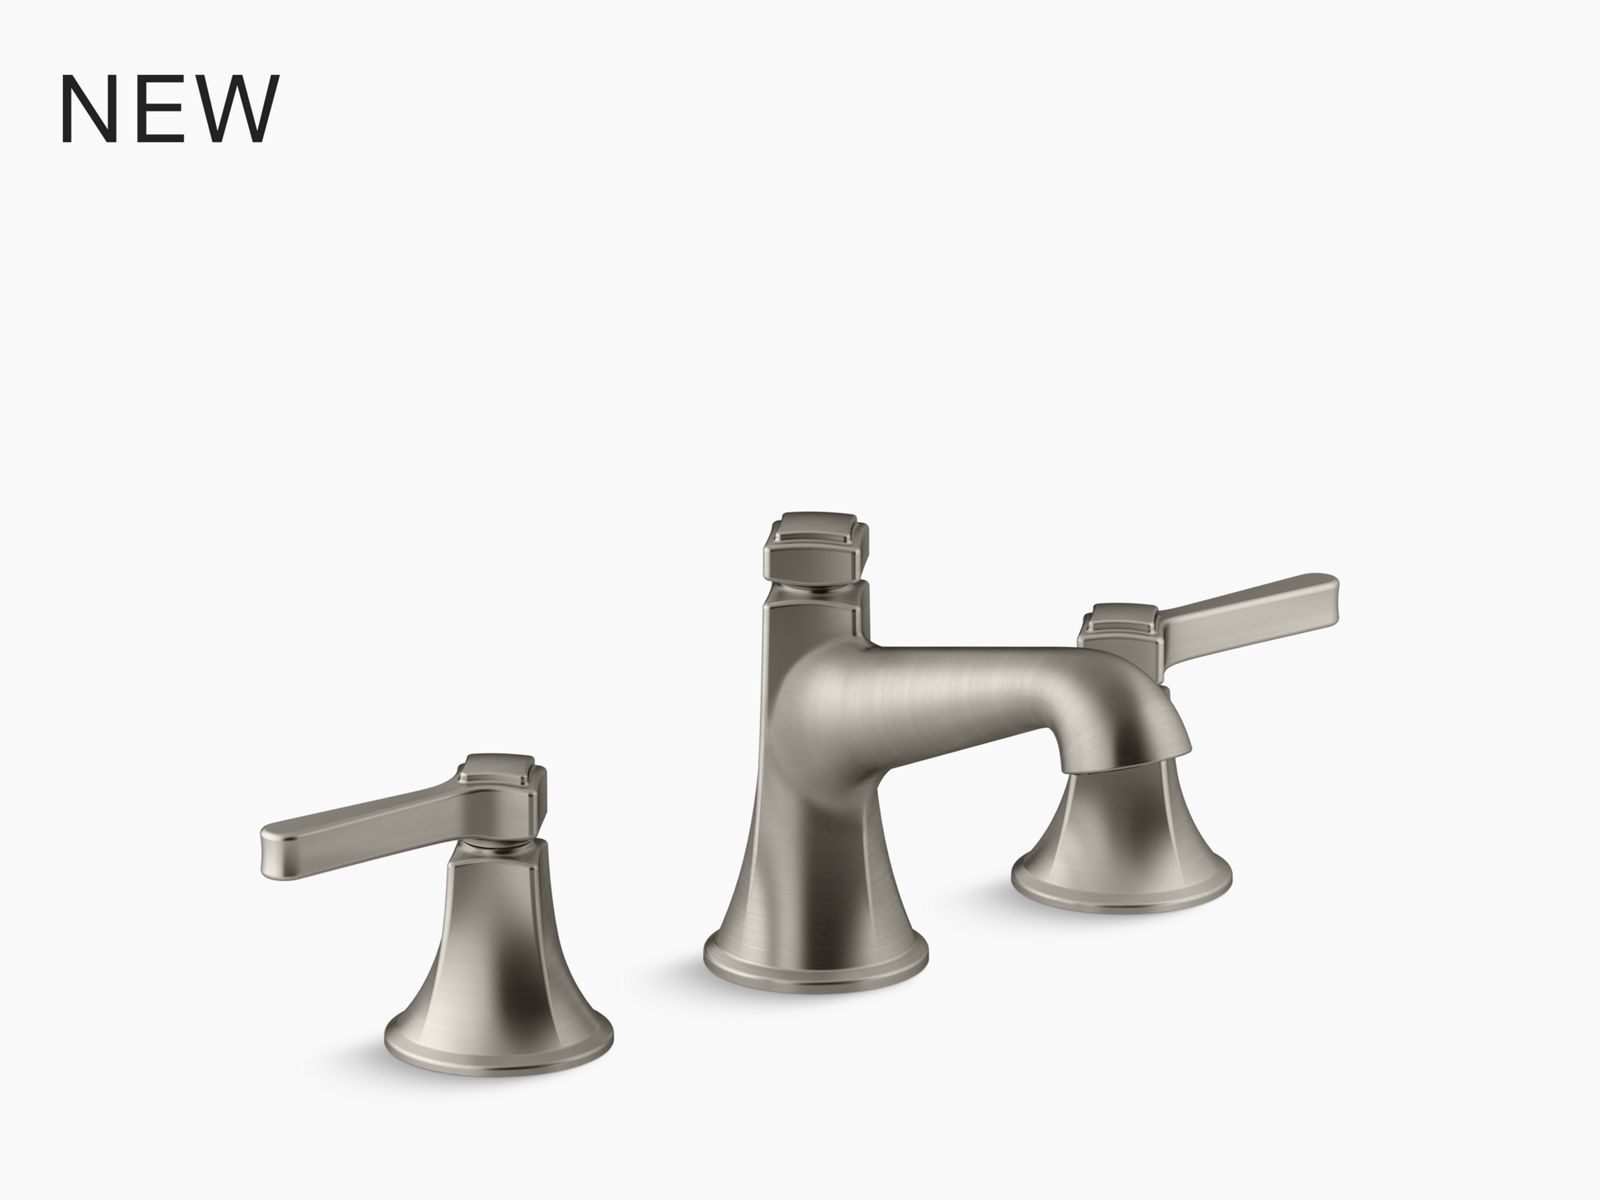 vin pull out kitchen faucet